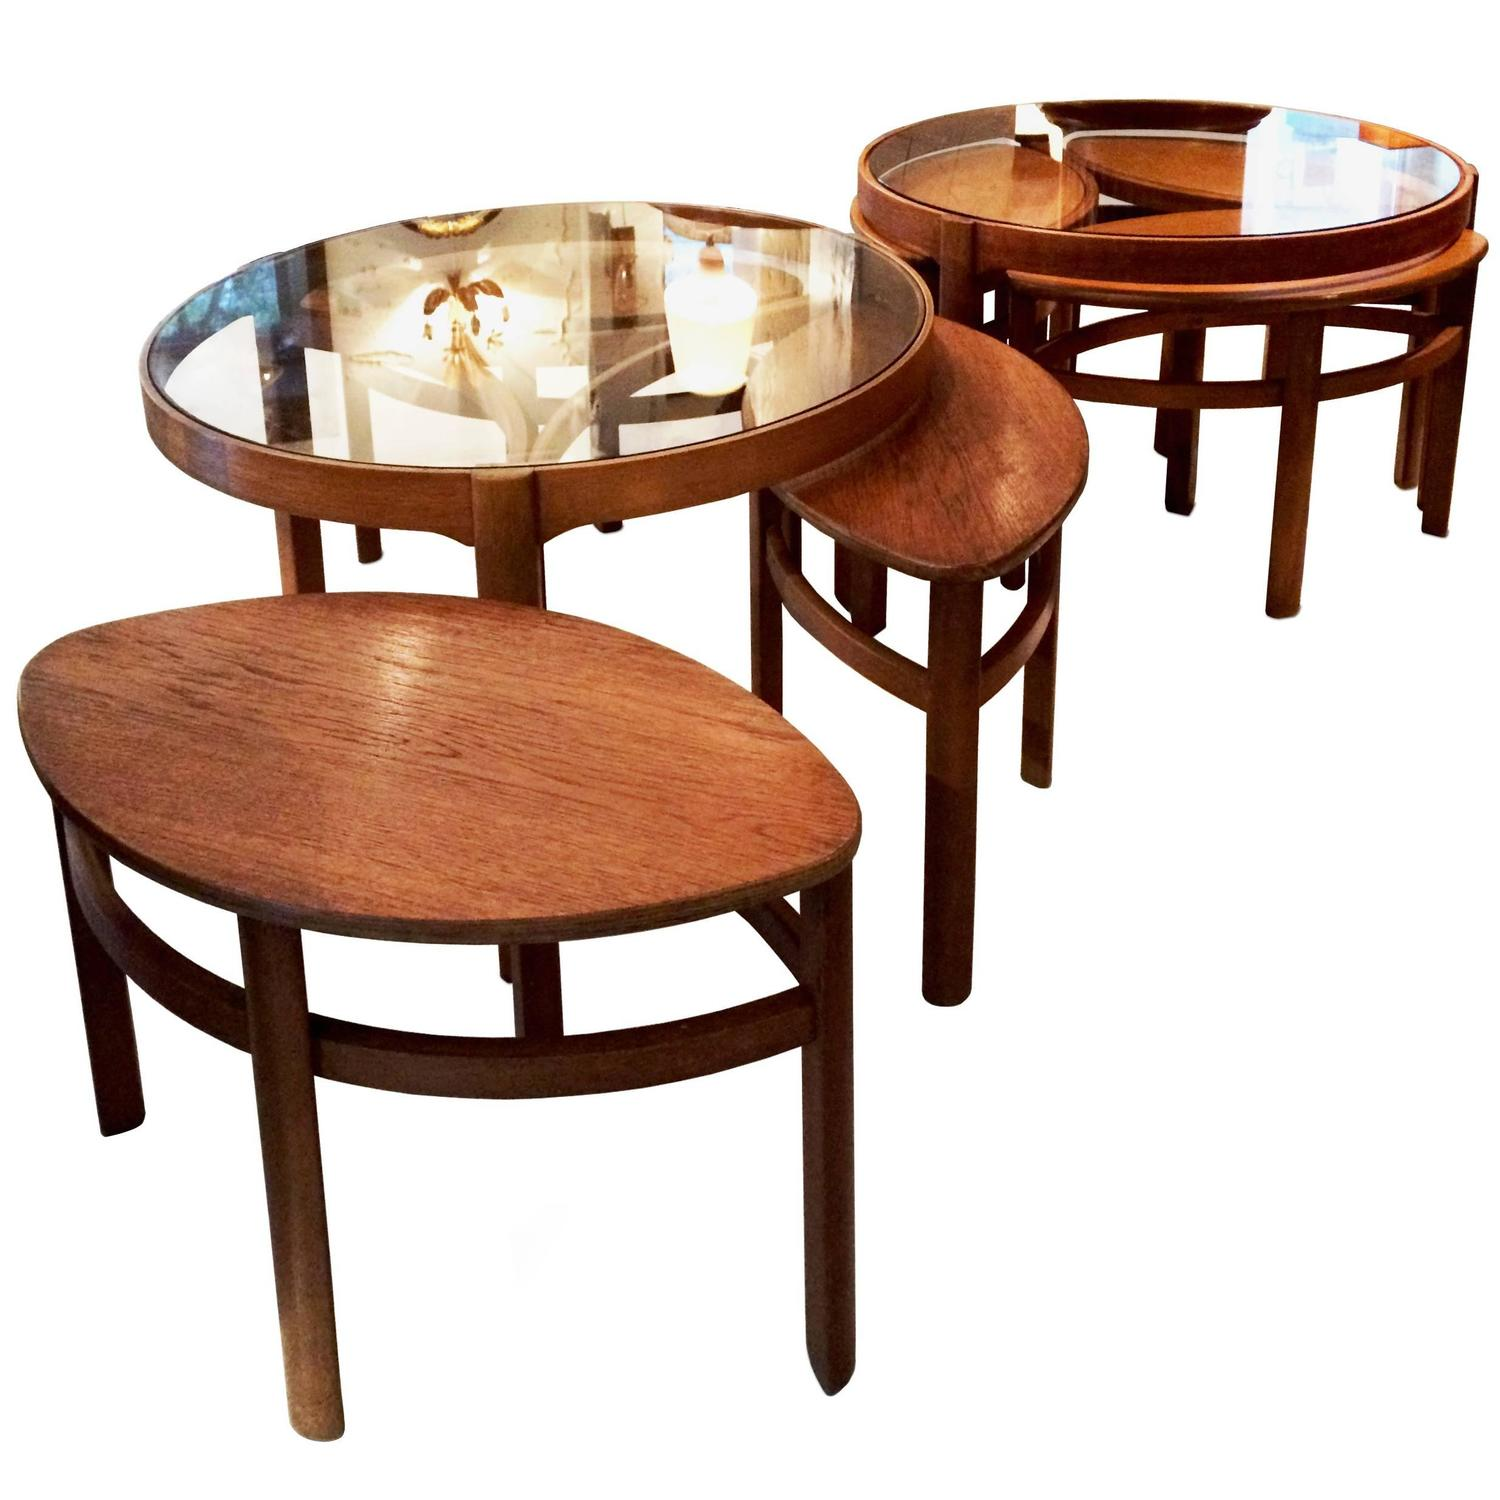 Pair of Round Nesting Tables by Nathan at 1stdibs